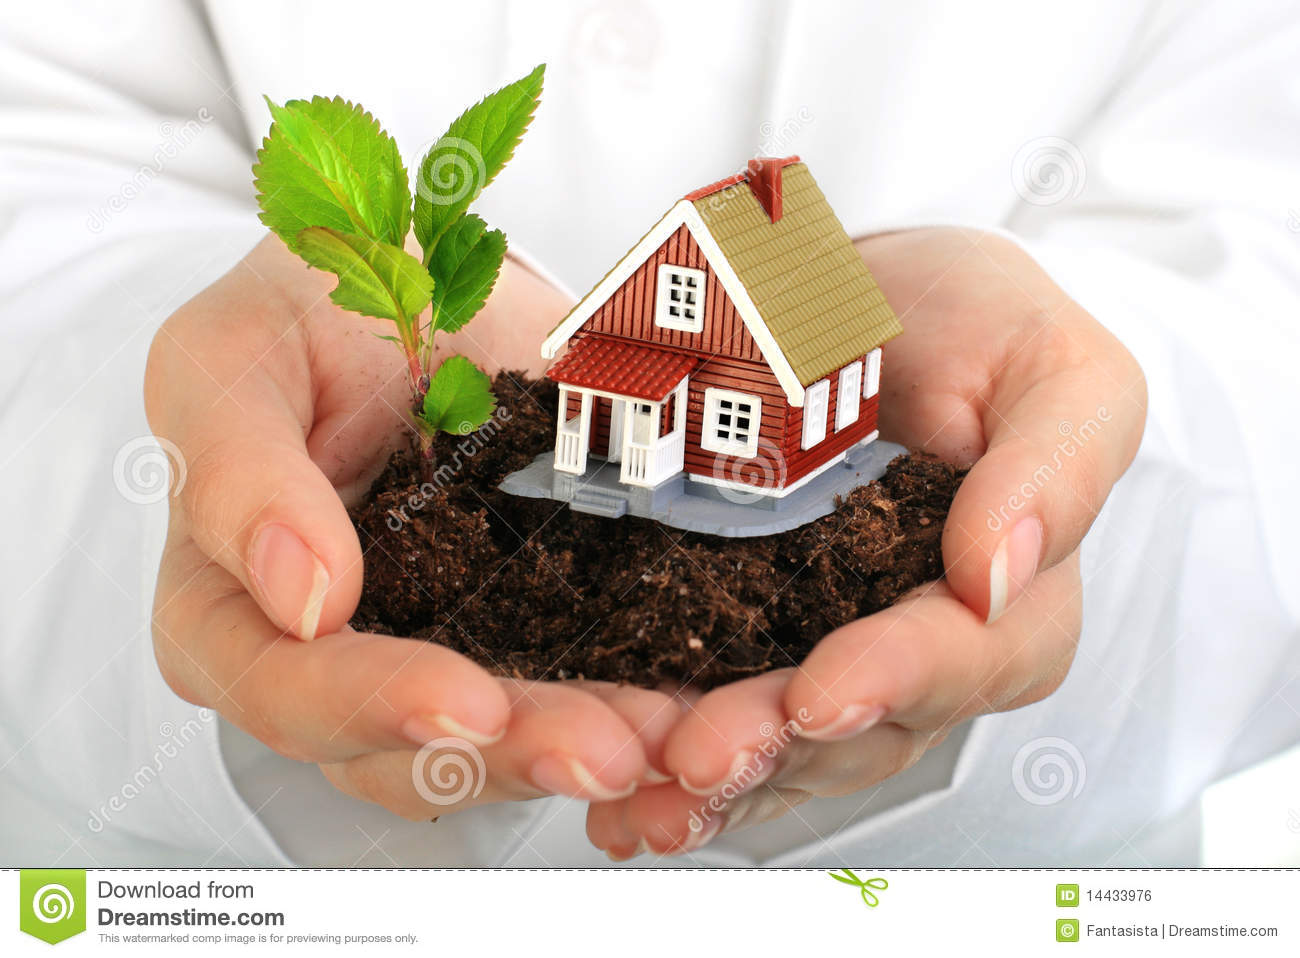 Small house and plant in hands.